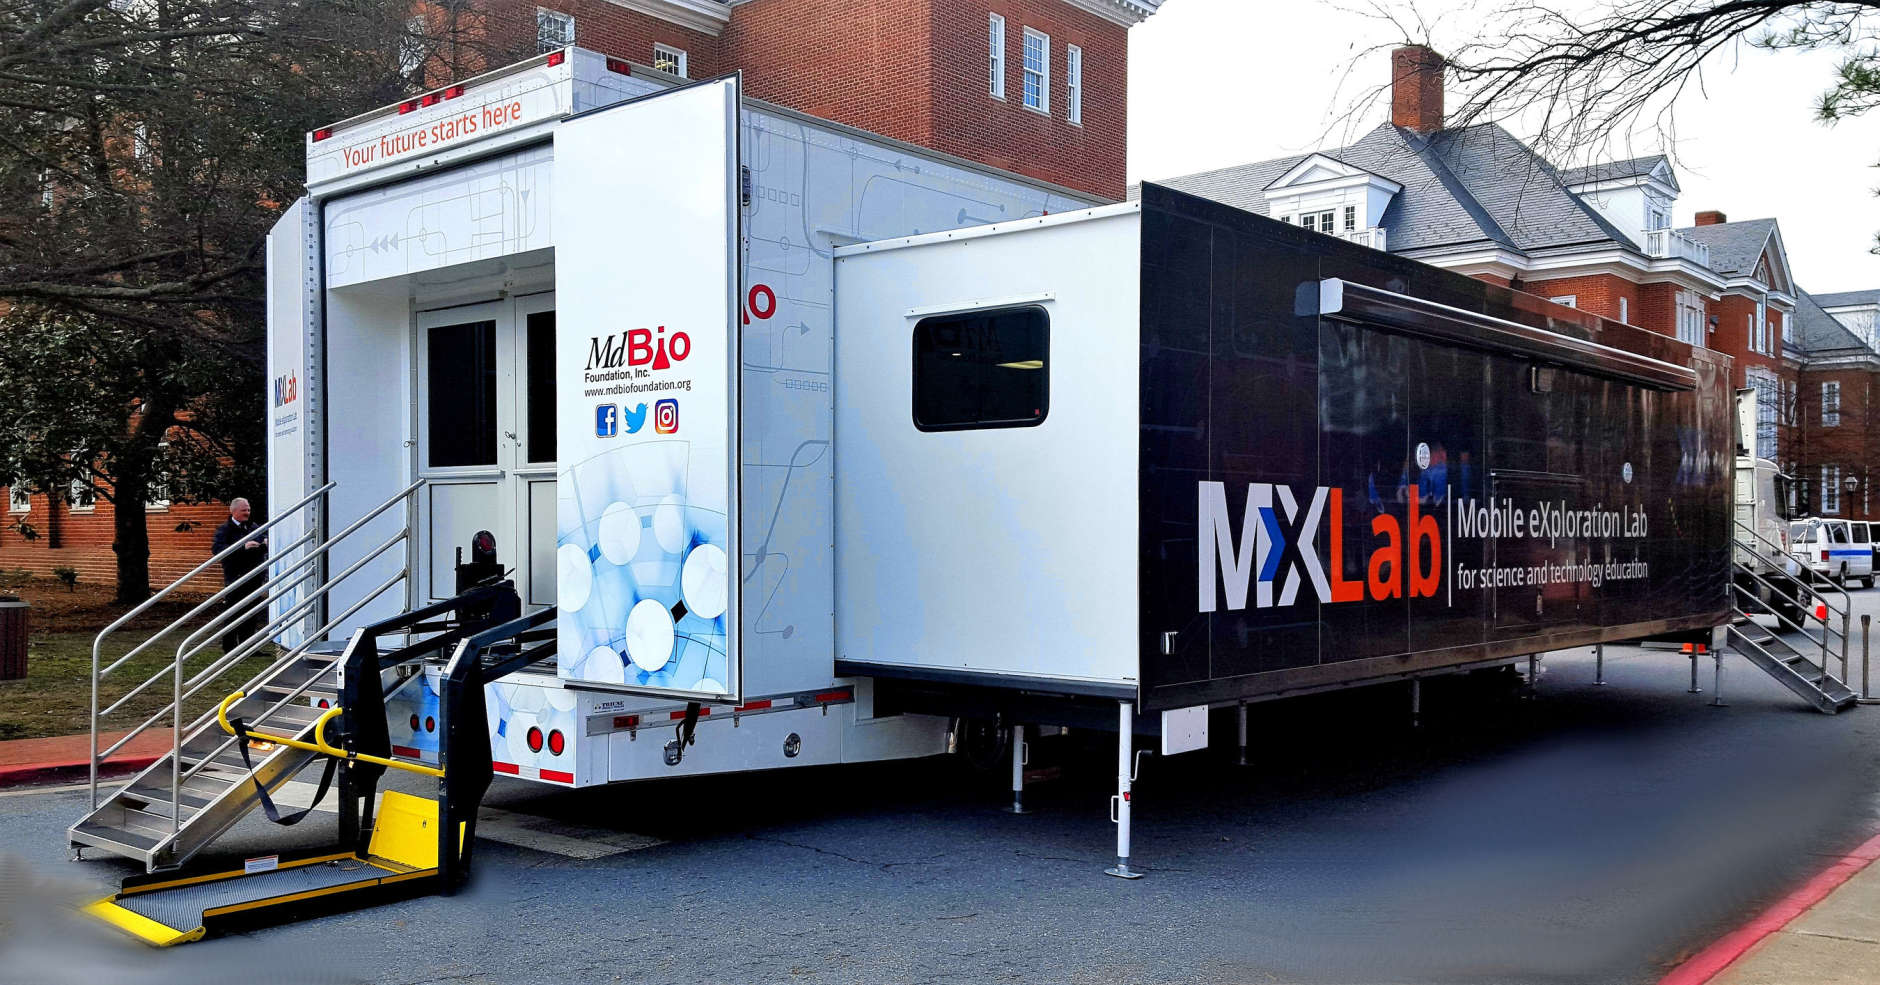 The trailer is the country's largest and most advanced mobile science laboratory, MdBio said.(Courtesy MdBio Foundation)